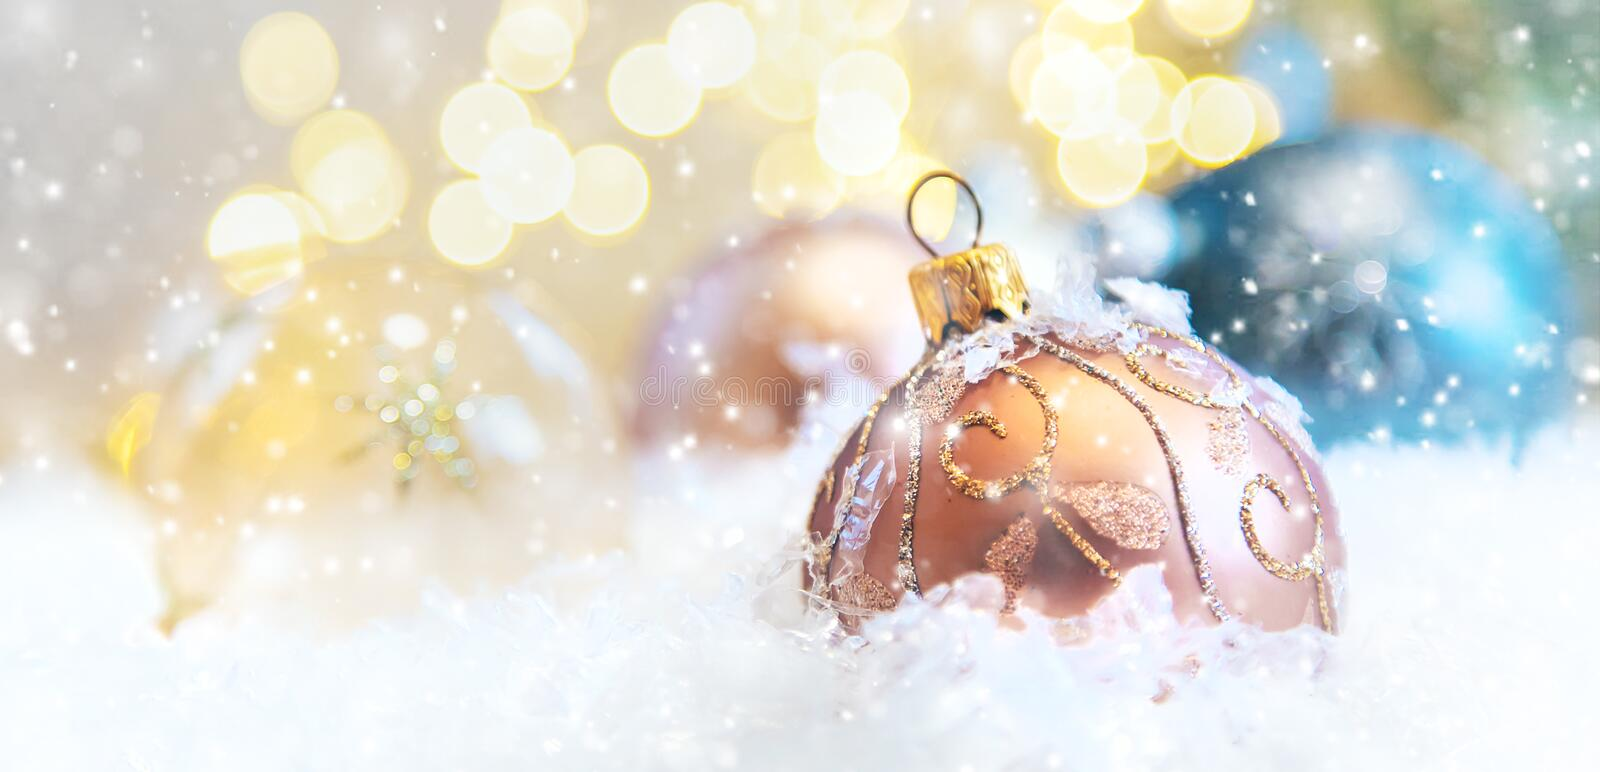 Merry Christmas and Happy New Year, Holidays greeting card background. Selective focus. Merry Christmas and Happy New Year, Holidays greeting card with blurred stock image